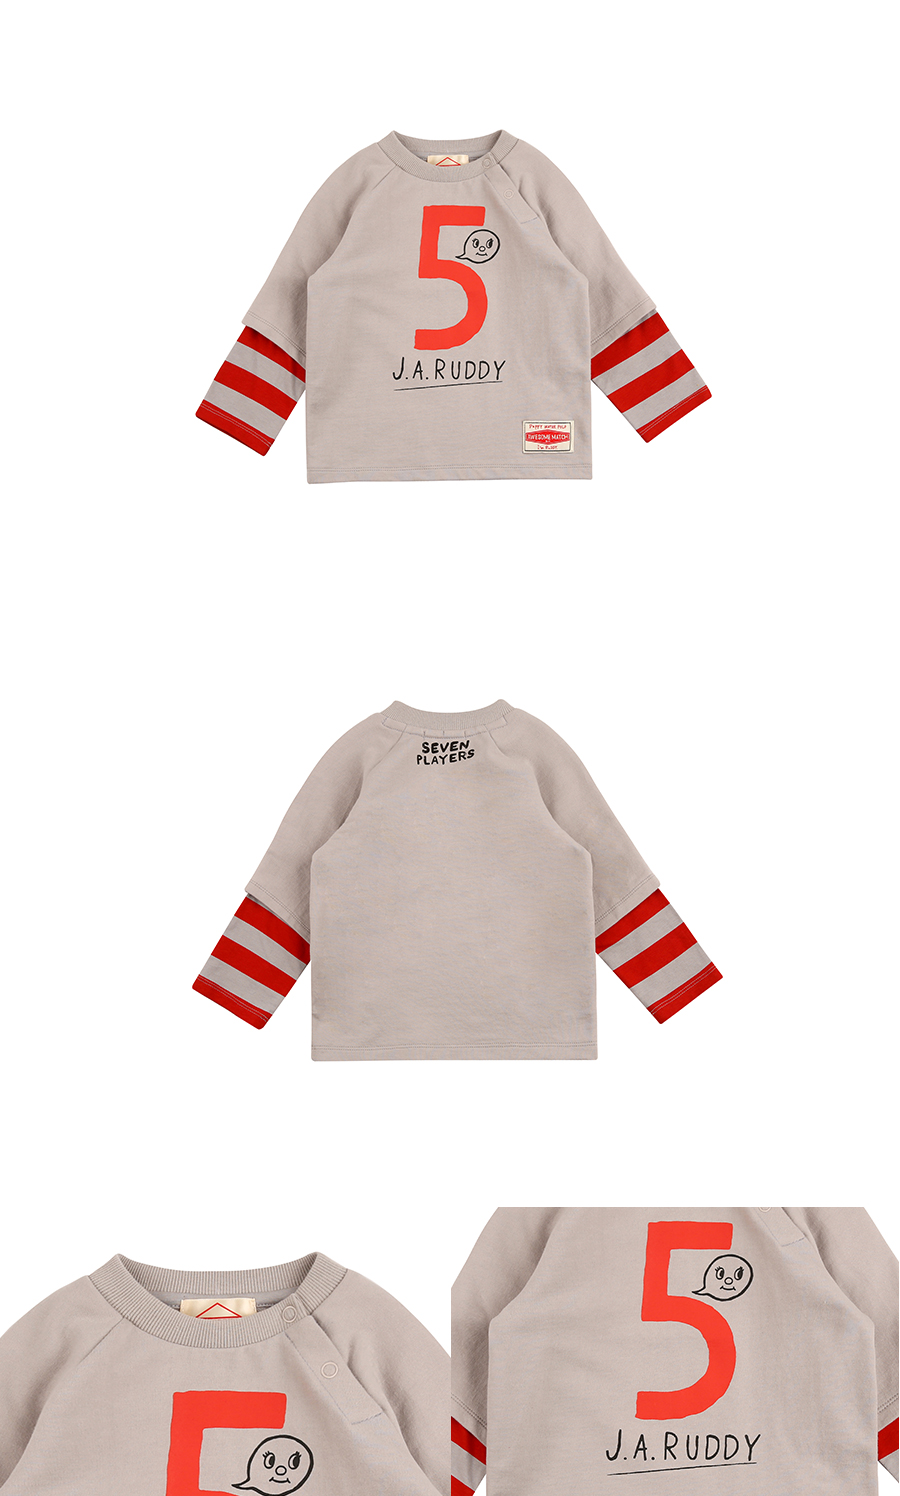 Number 5 ruddy baby layered sweatshirt 상세 이미지